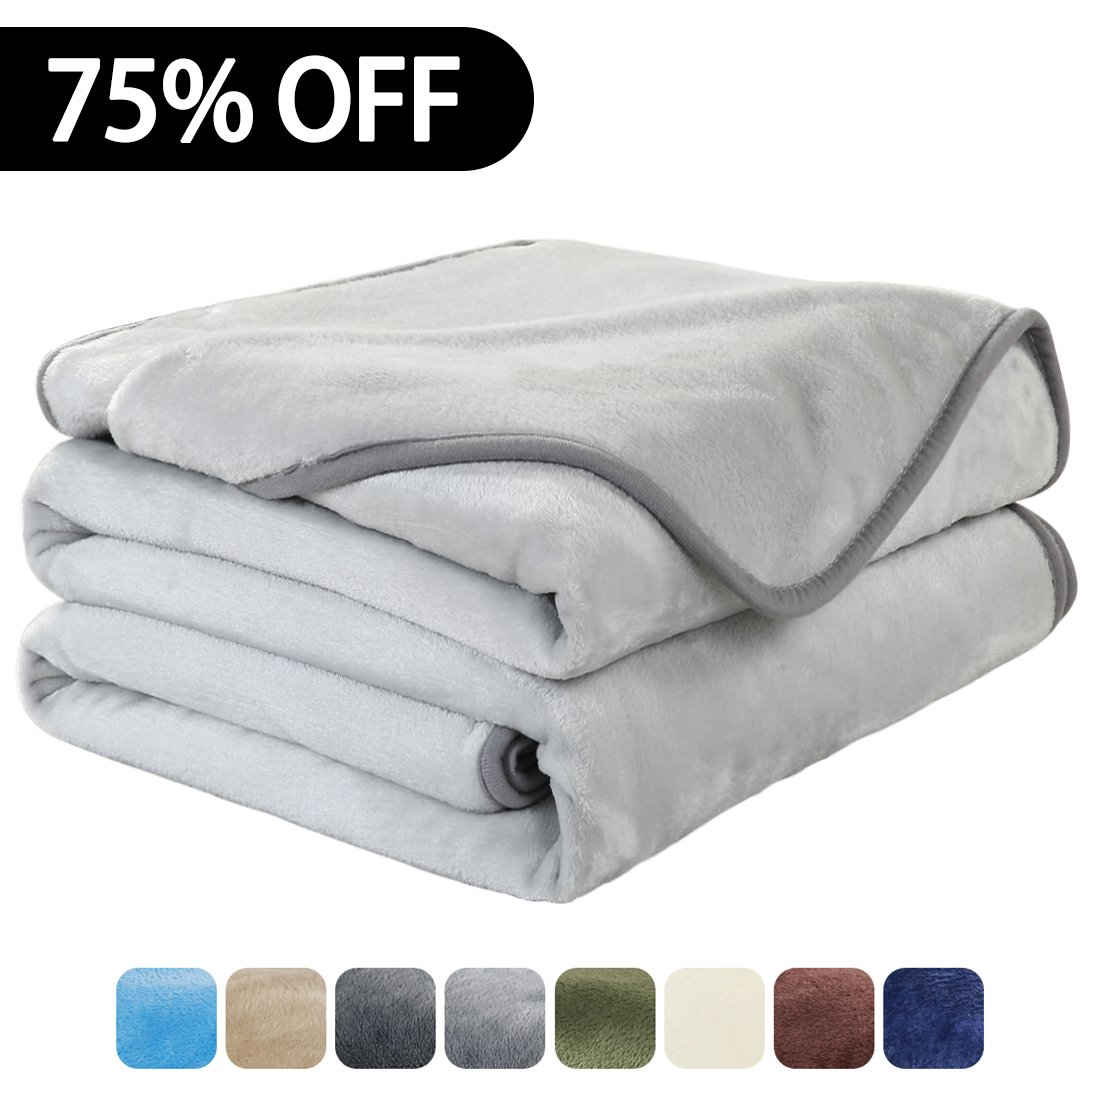 Luxury Fleece Super Soft Thermal Blanket Warm Fuzzy Microplush Lightweight Blankets for Bed Sofa